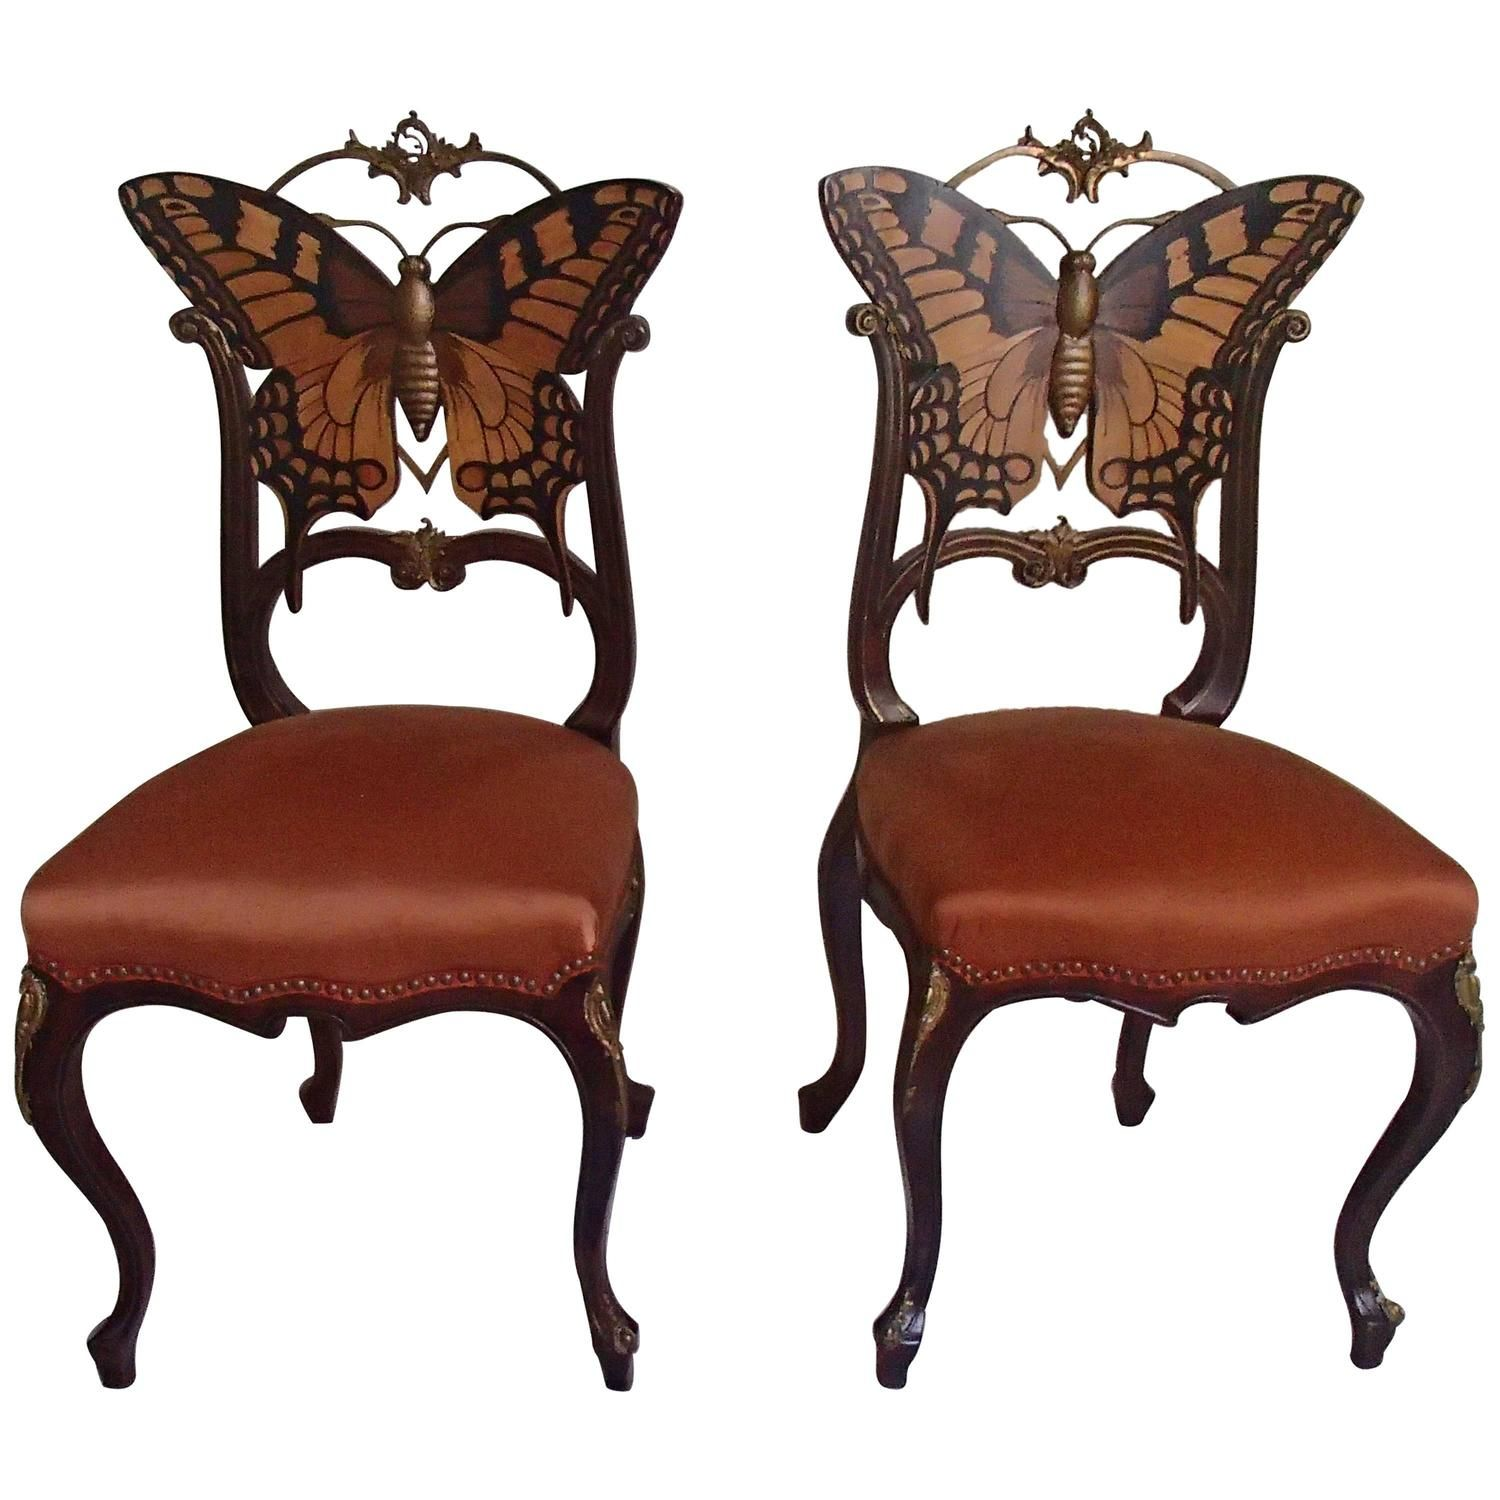 Antique furniture chair - Pair Of Early Art Nouveau Butterfly Chairs Inlays And Brass